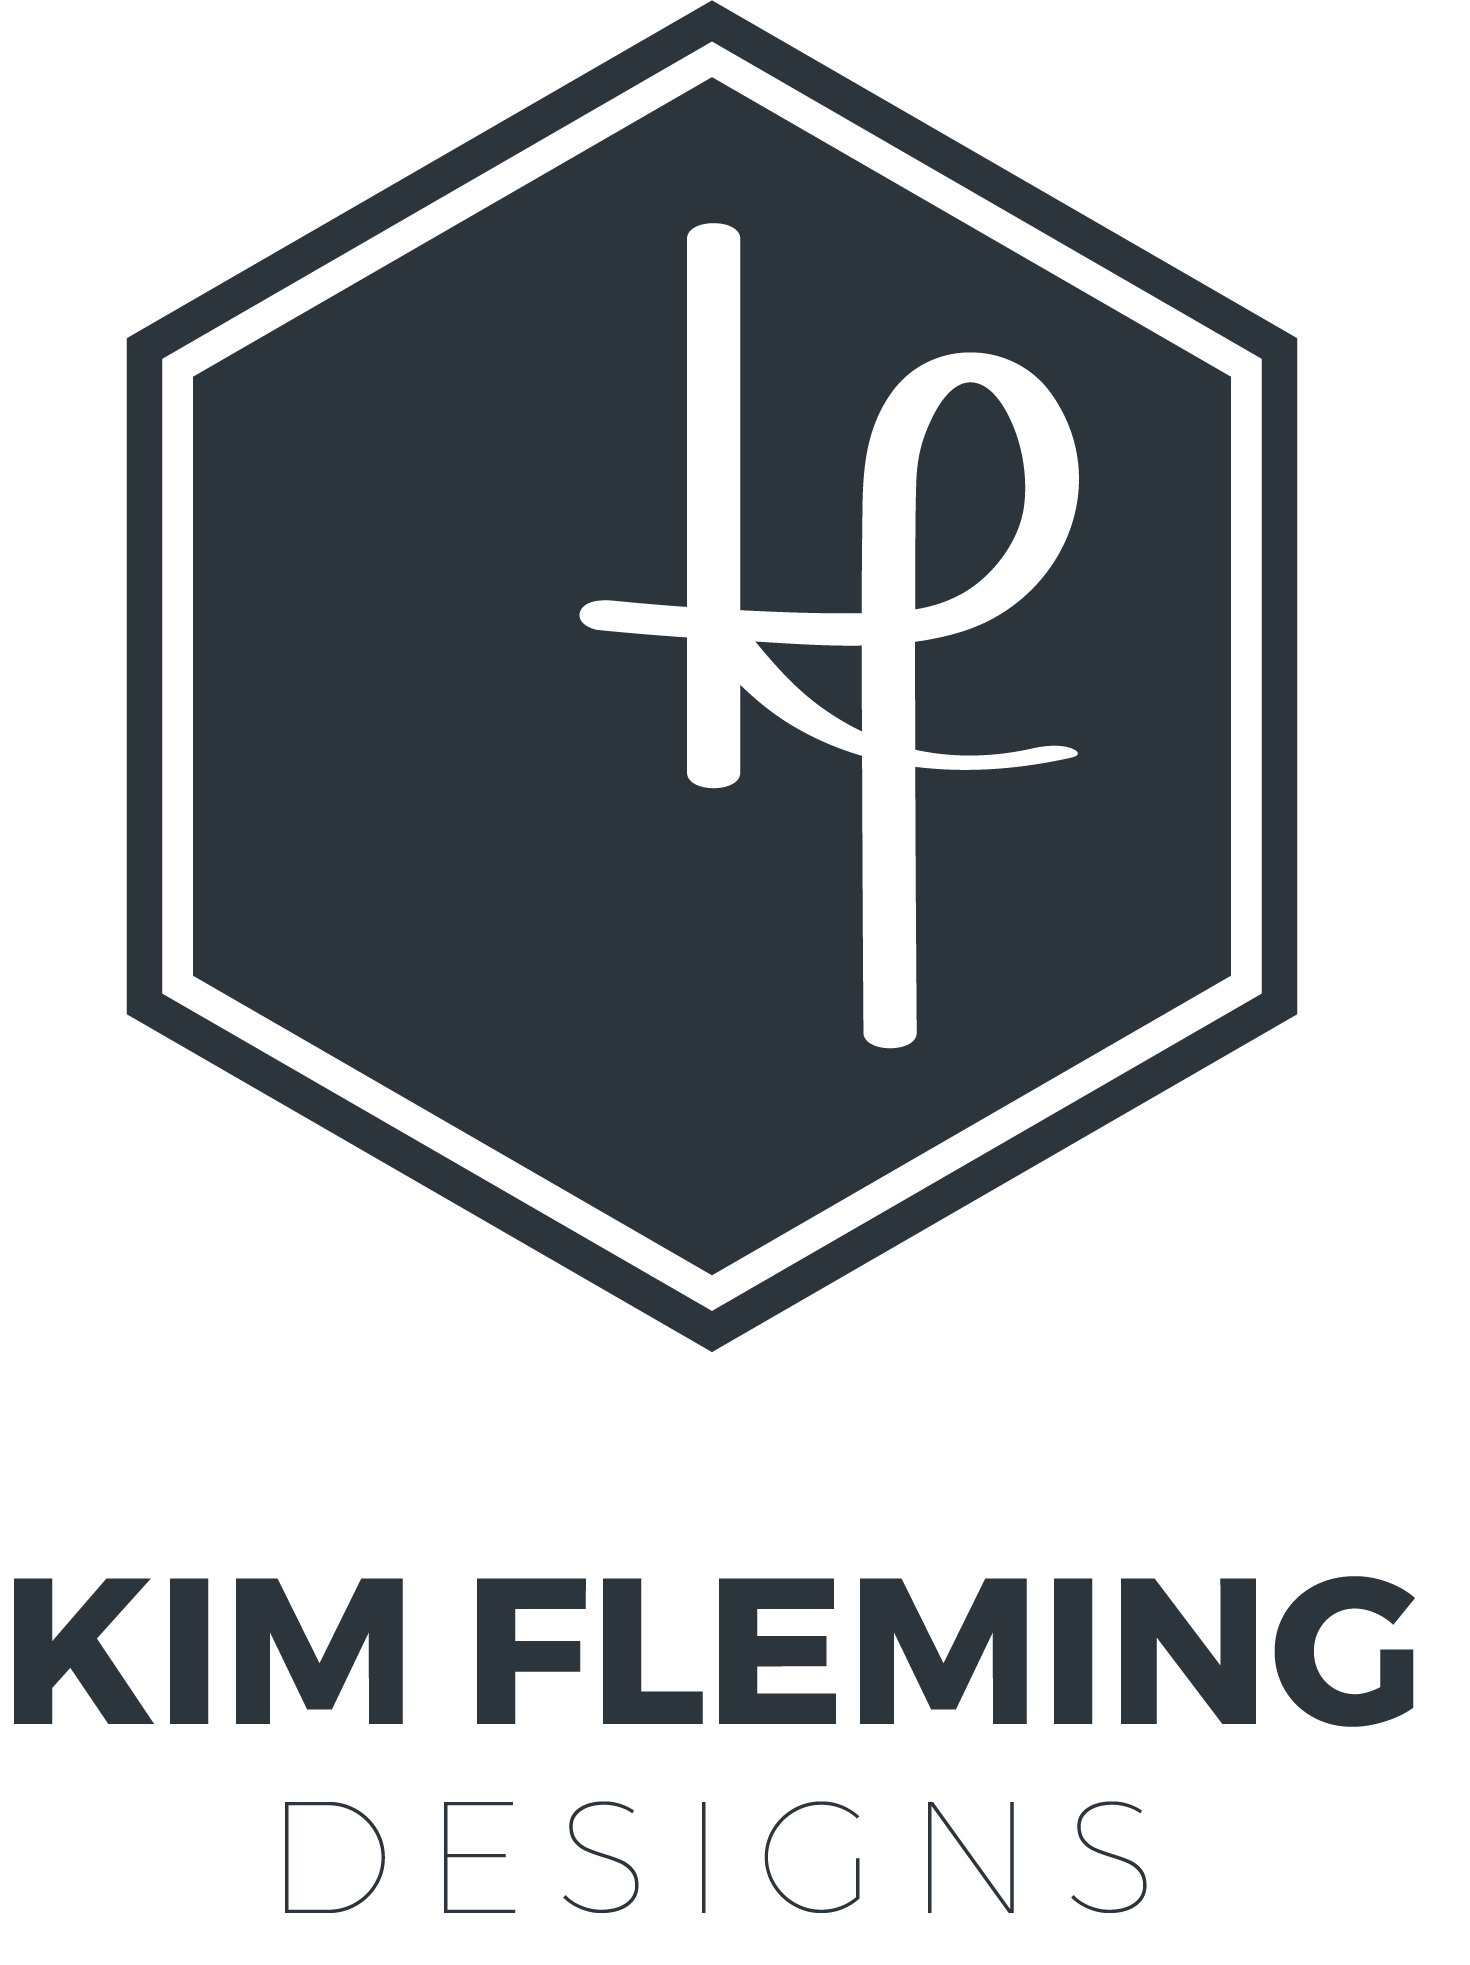 Kimberly Fleming